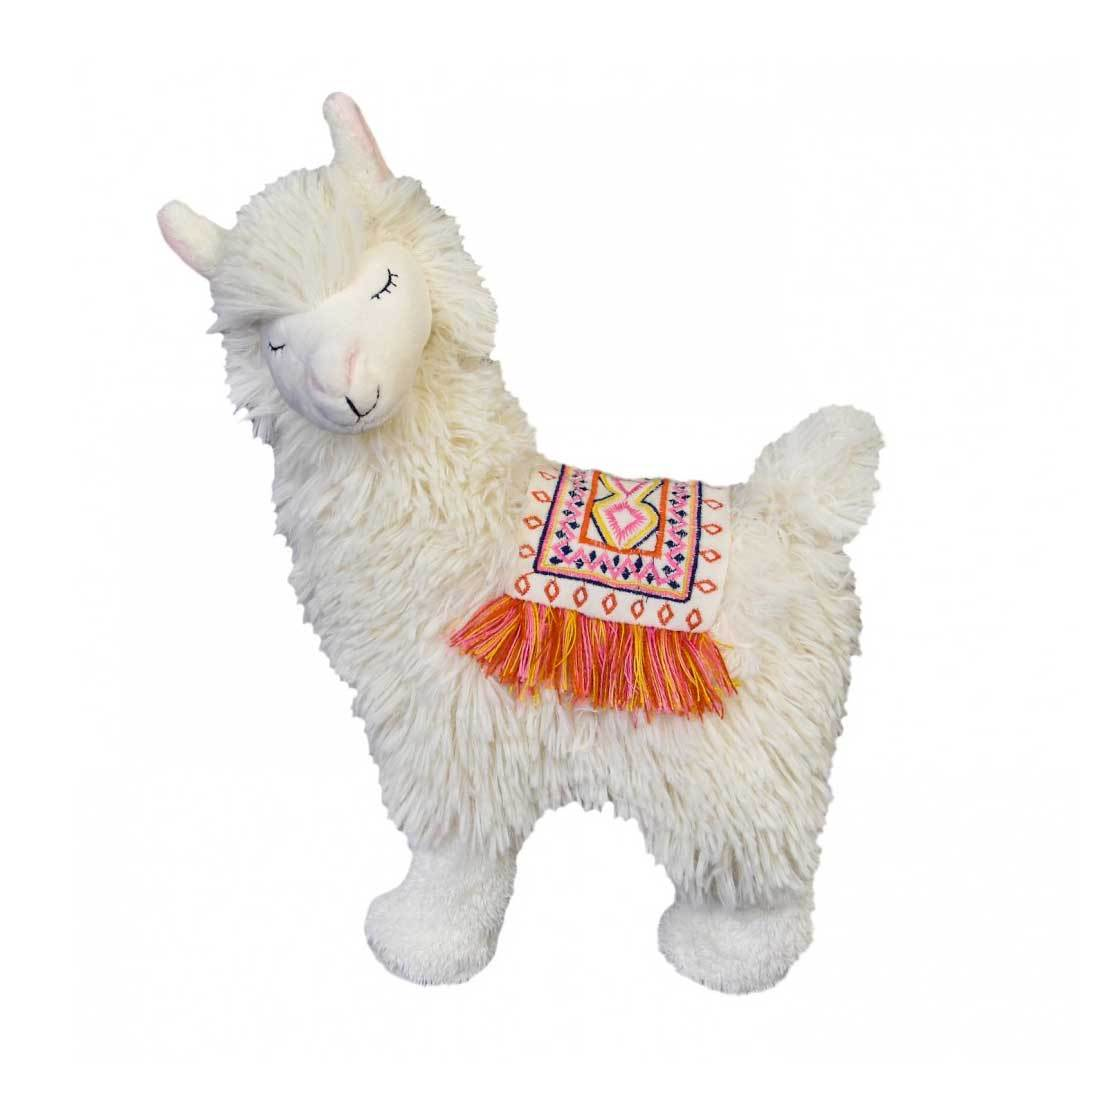 Lily & George Lulu Llama Soft Toy | Koop.co.nz